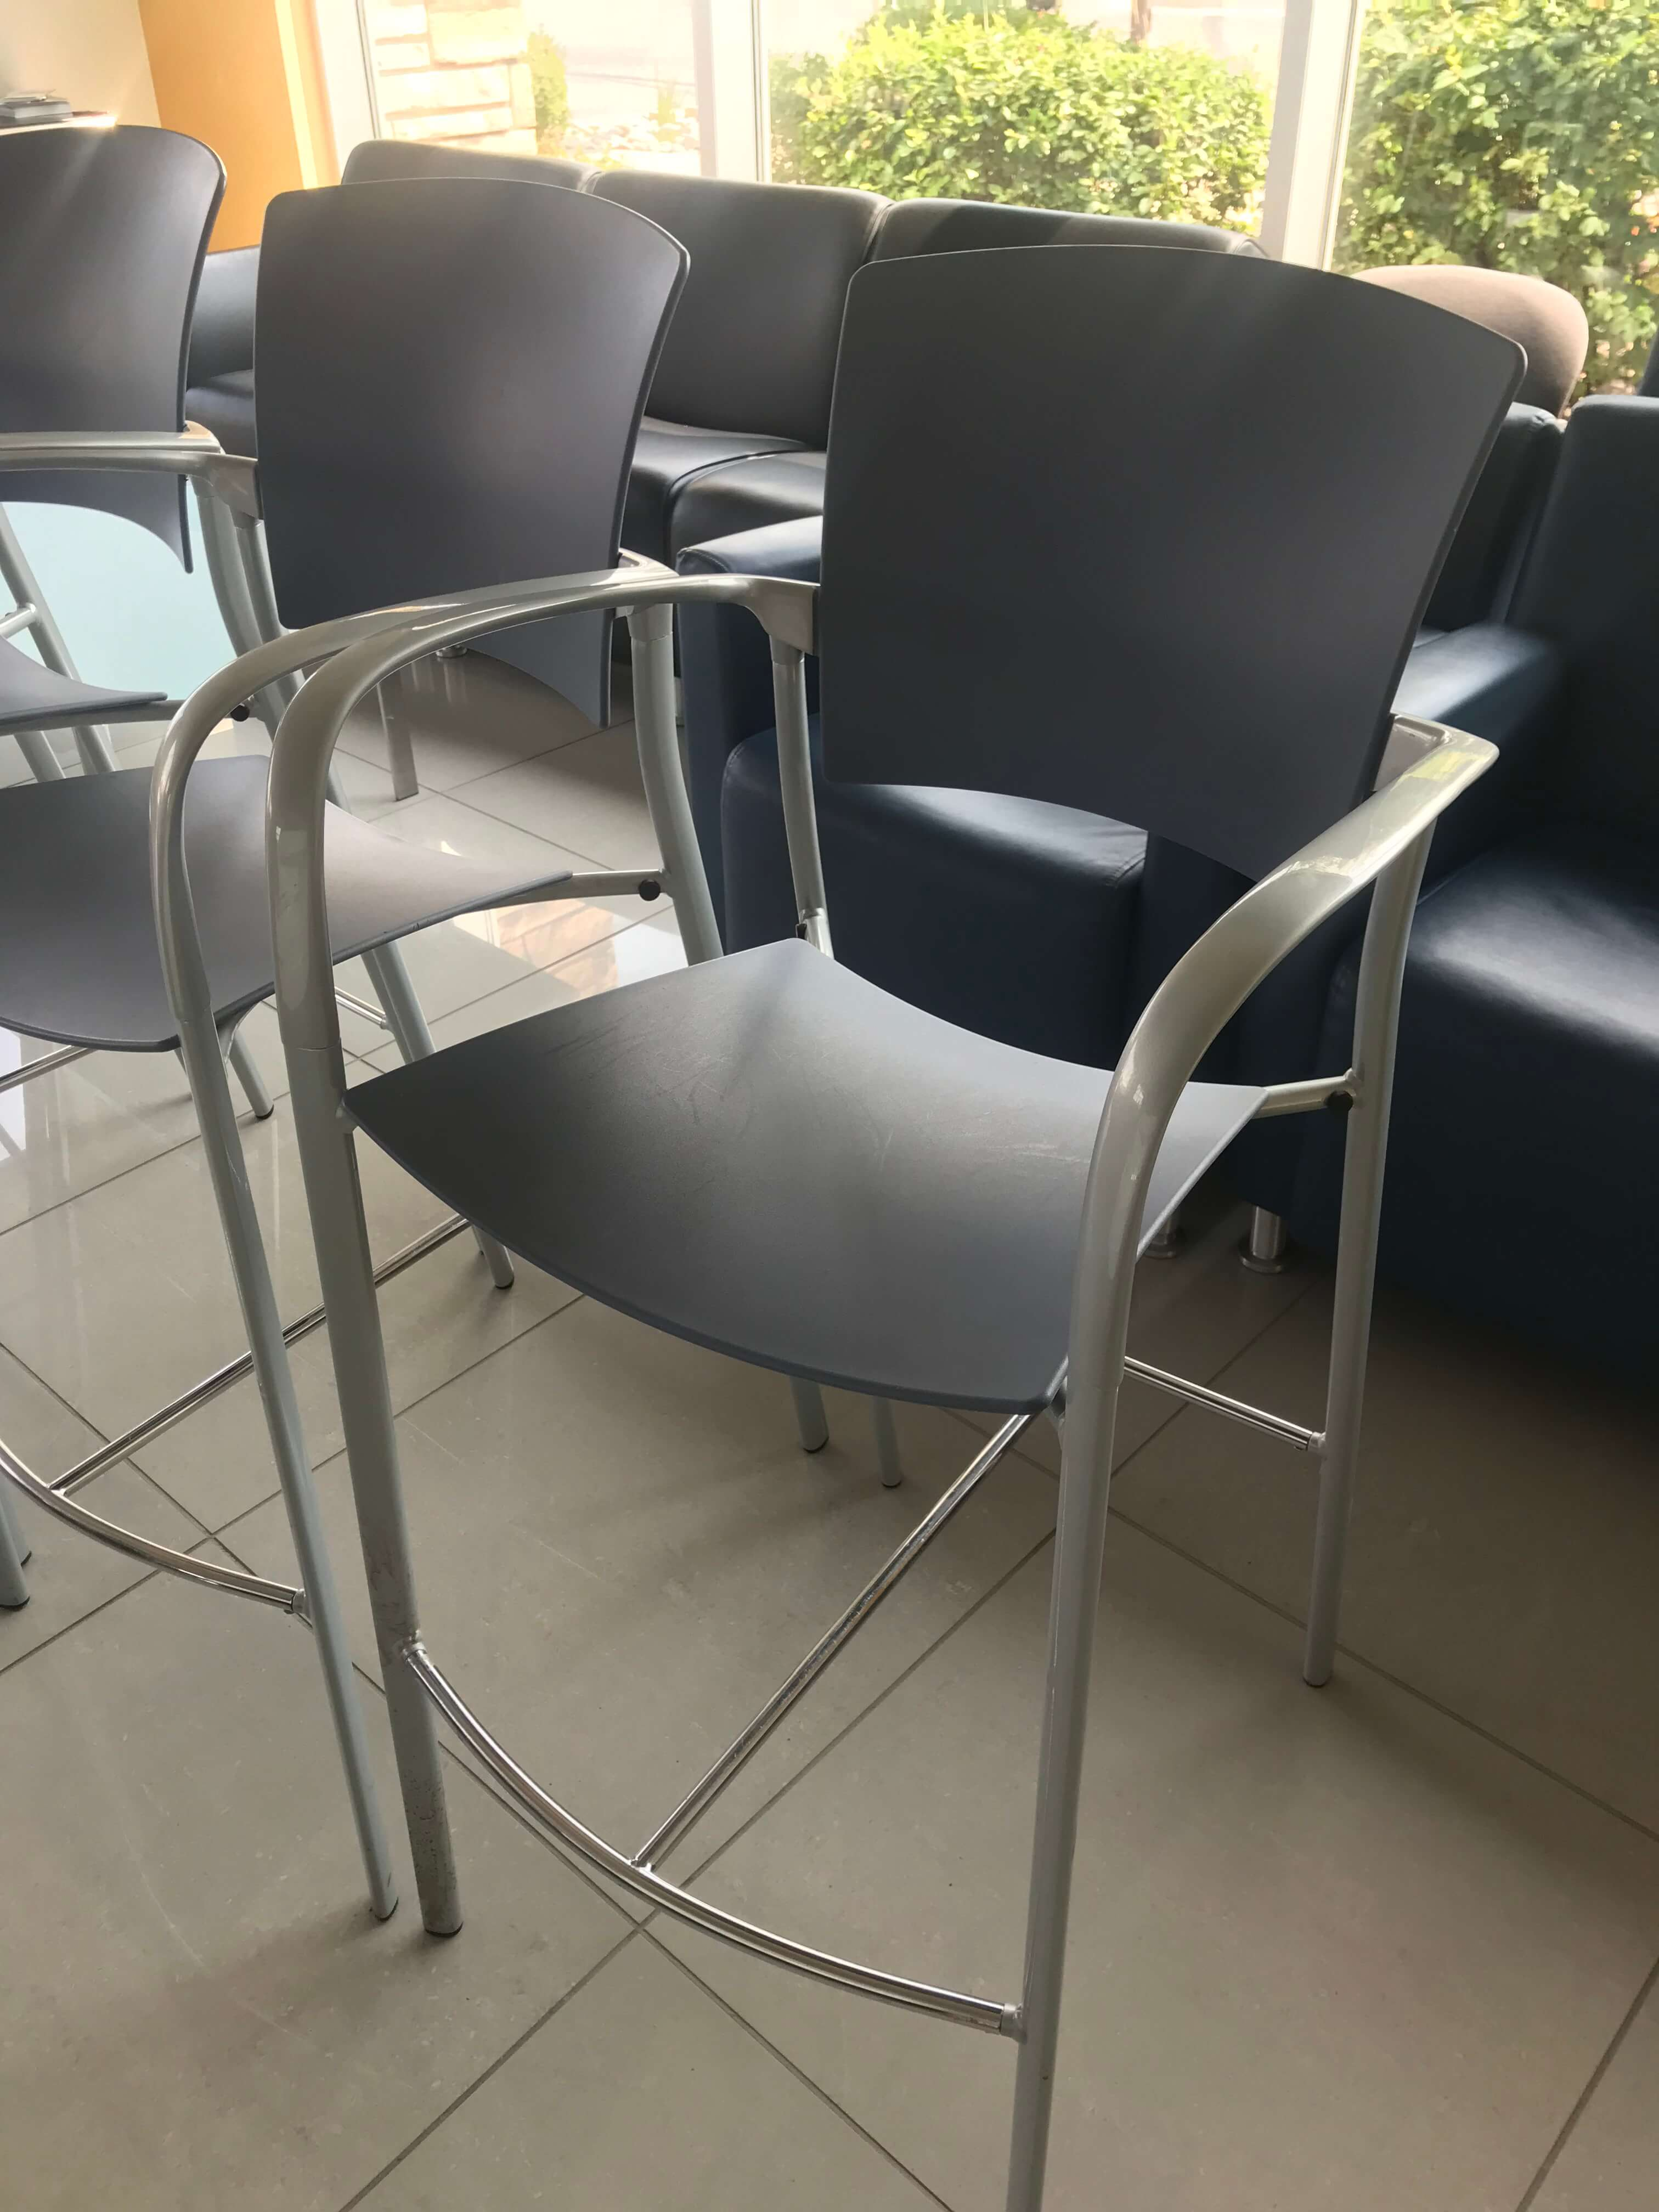 Used Office Chairs For Sale - Steelcase Enea - Used Office Furniture For Sale